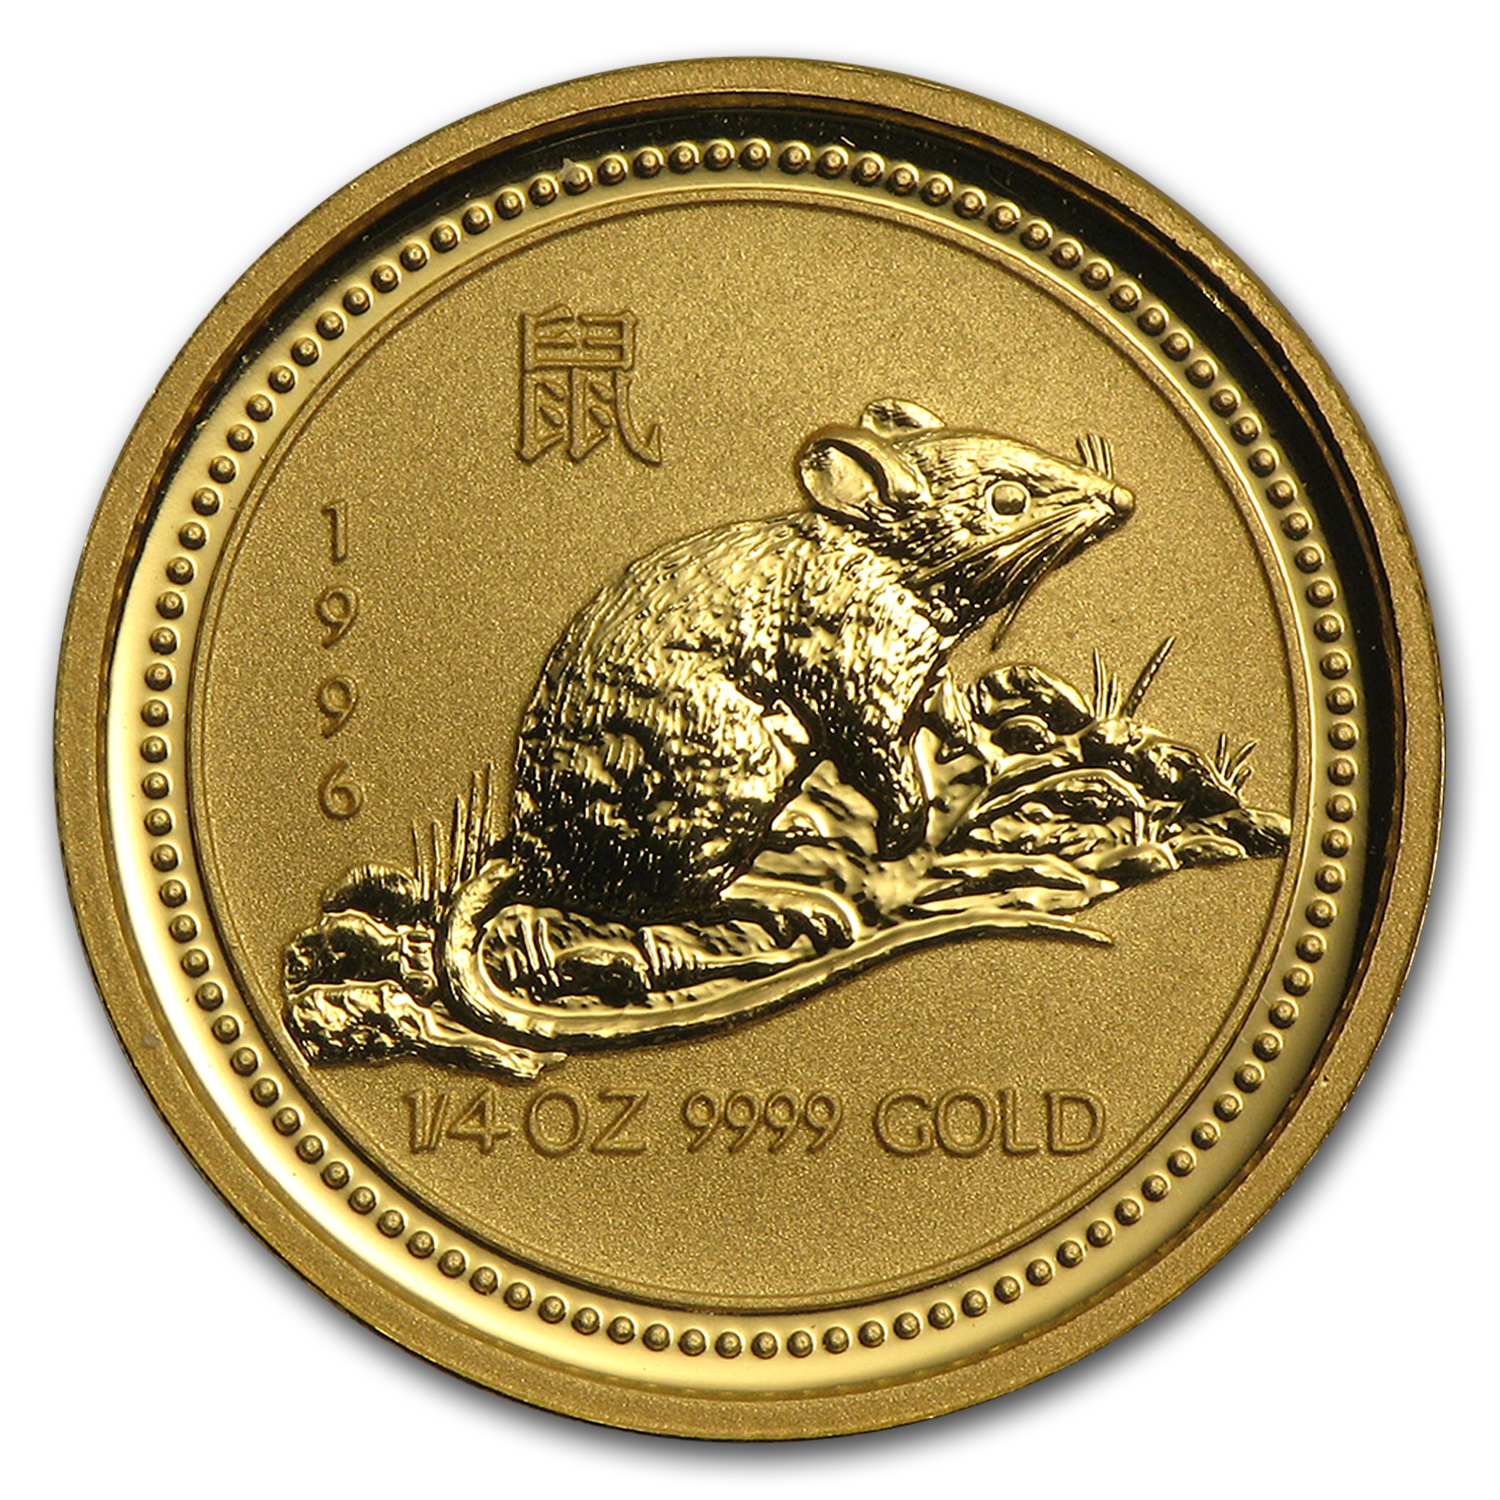 1996 1/4 oz Gold Year of the Rat Lunar Coin (Series I) Key Date!